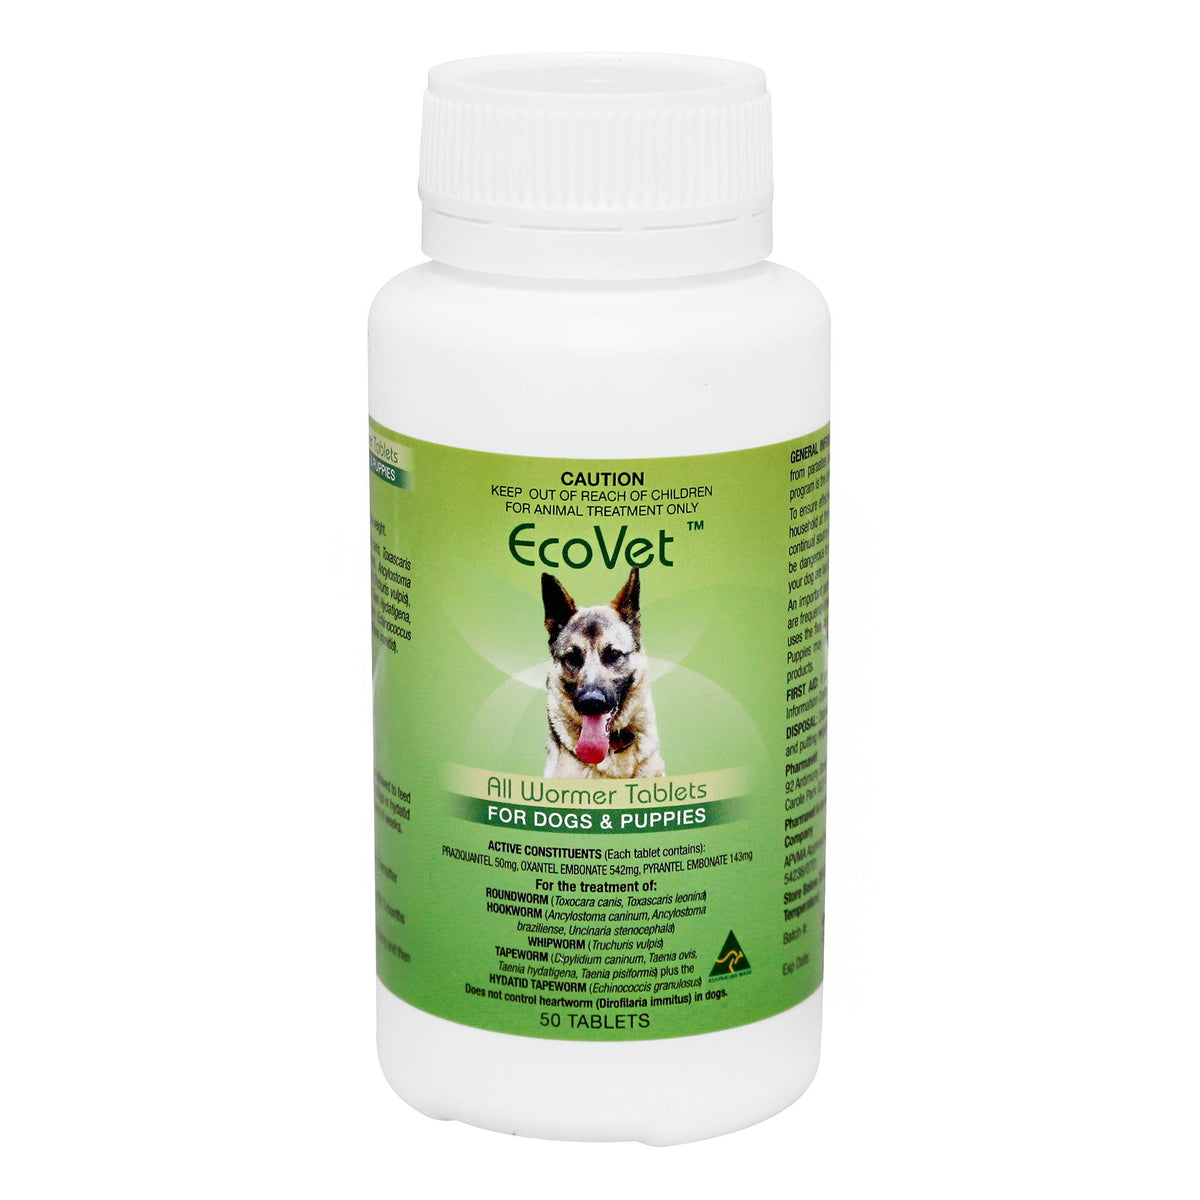 EcoVet All Wormer Tablets for Dogs and Puppies